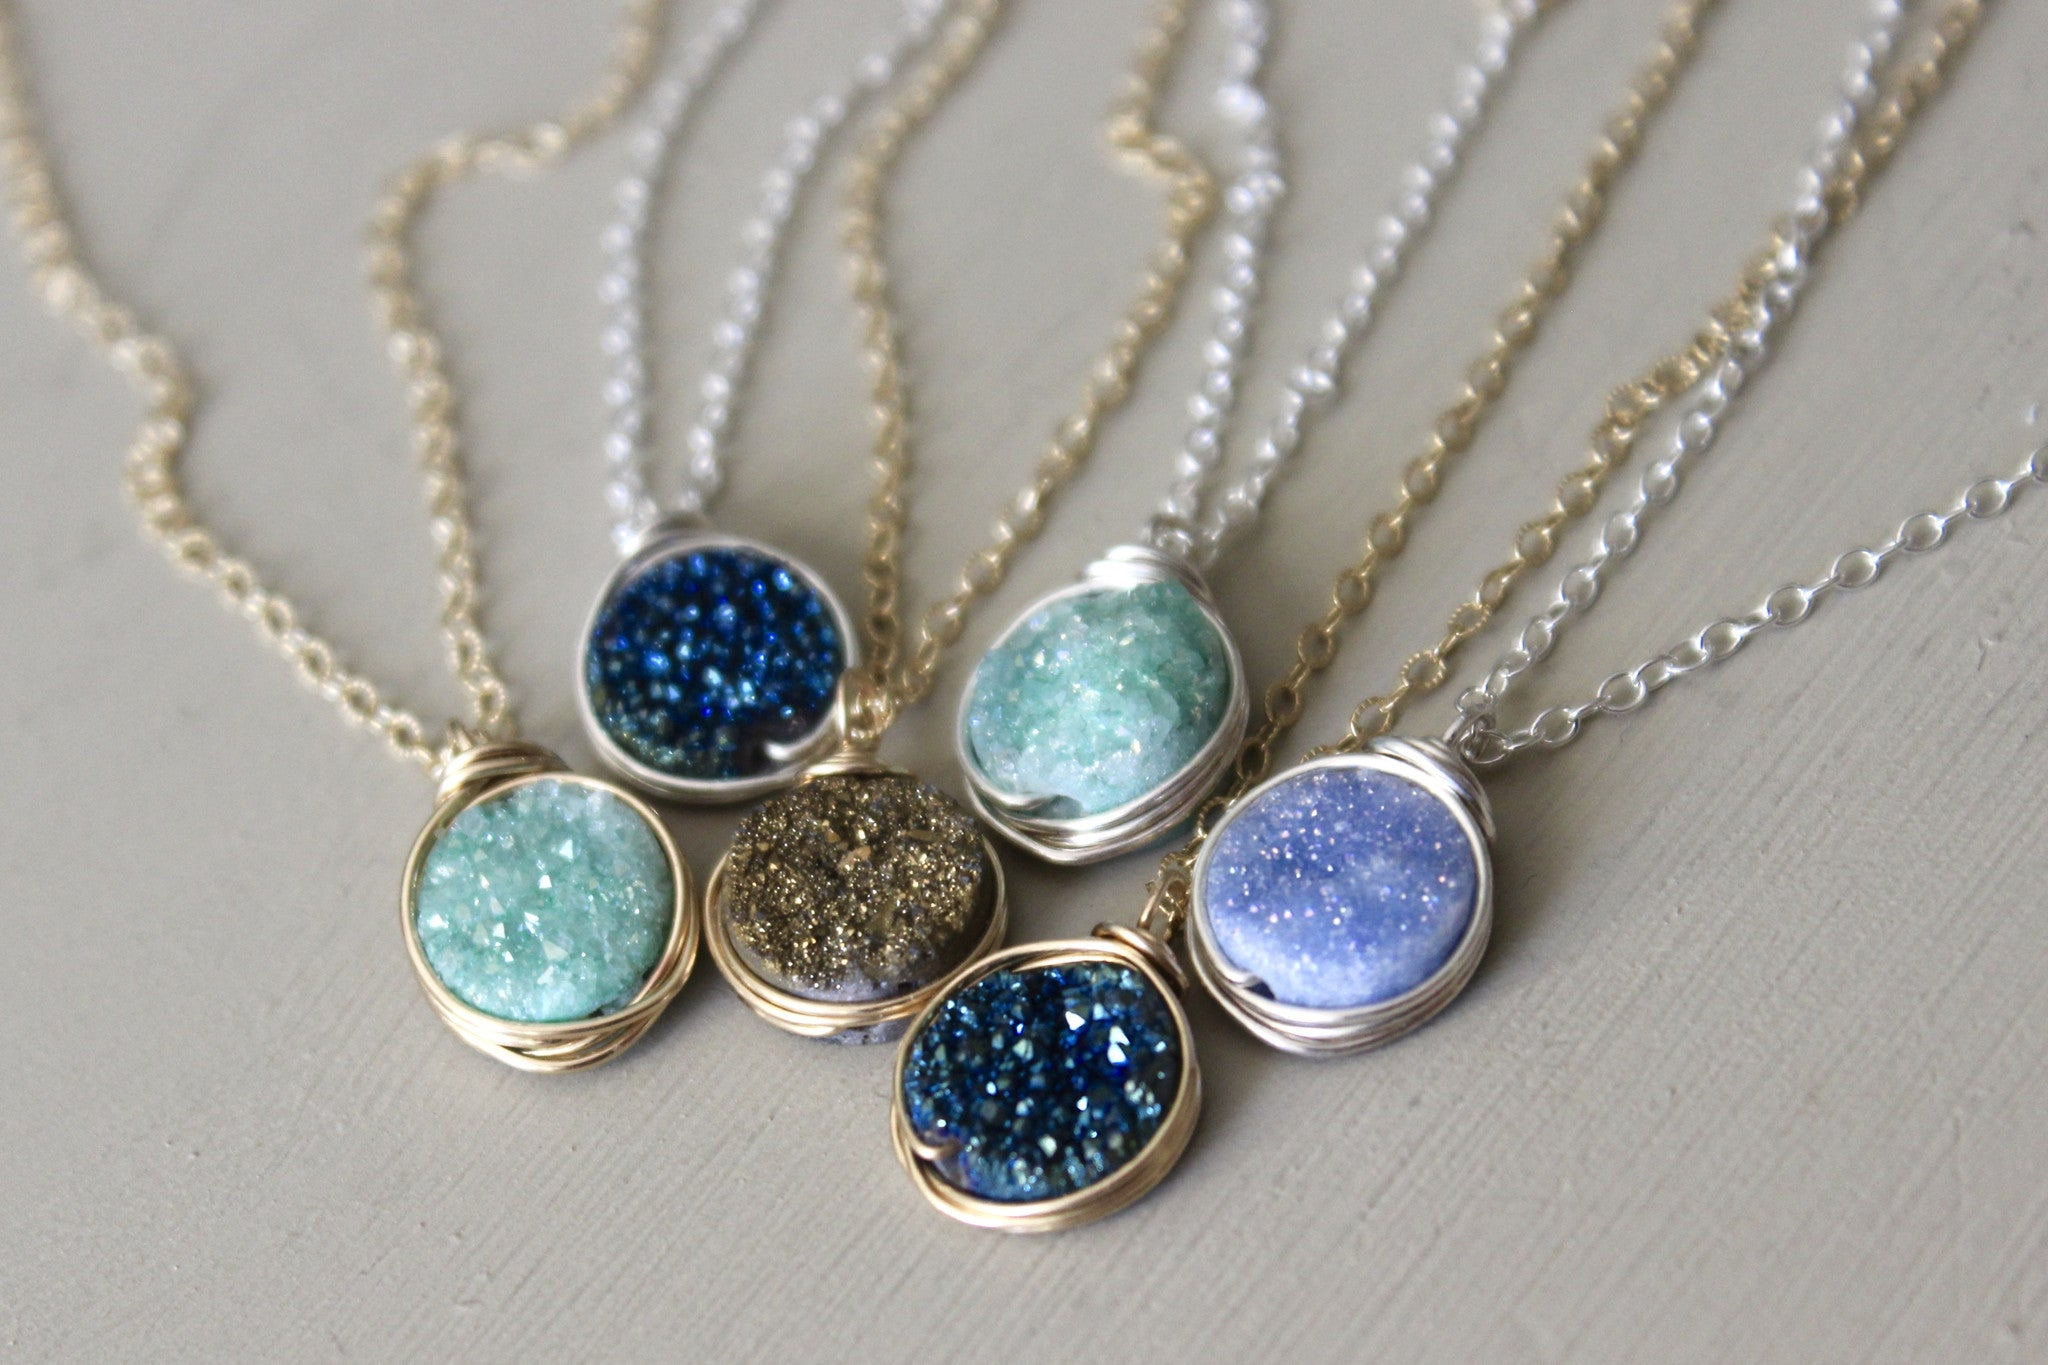 Druzy Pendant Necklace - Designed By Lei